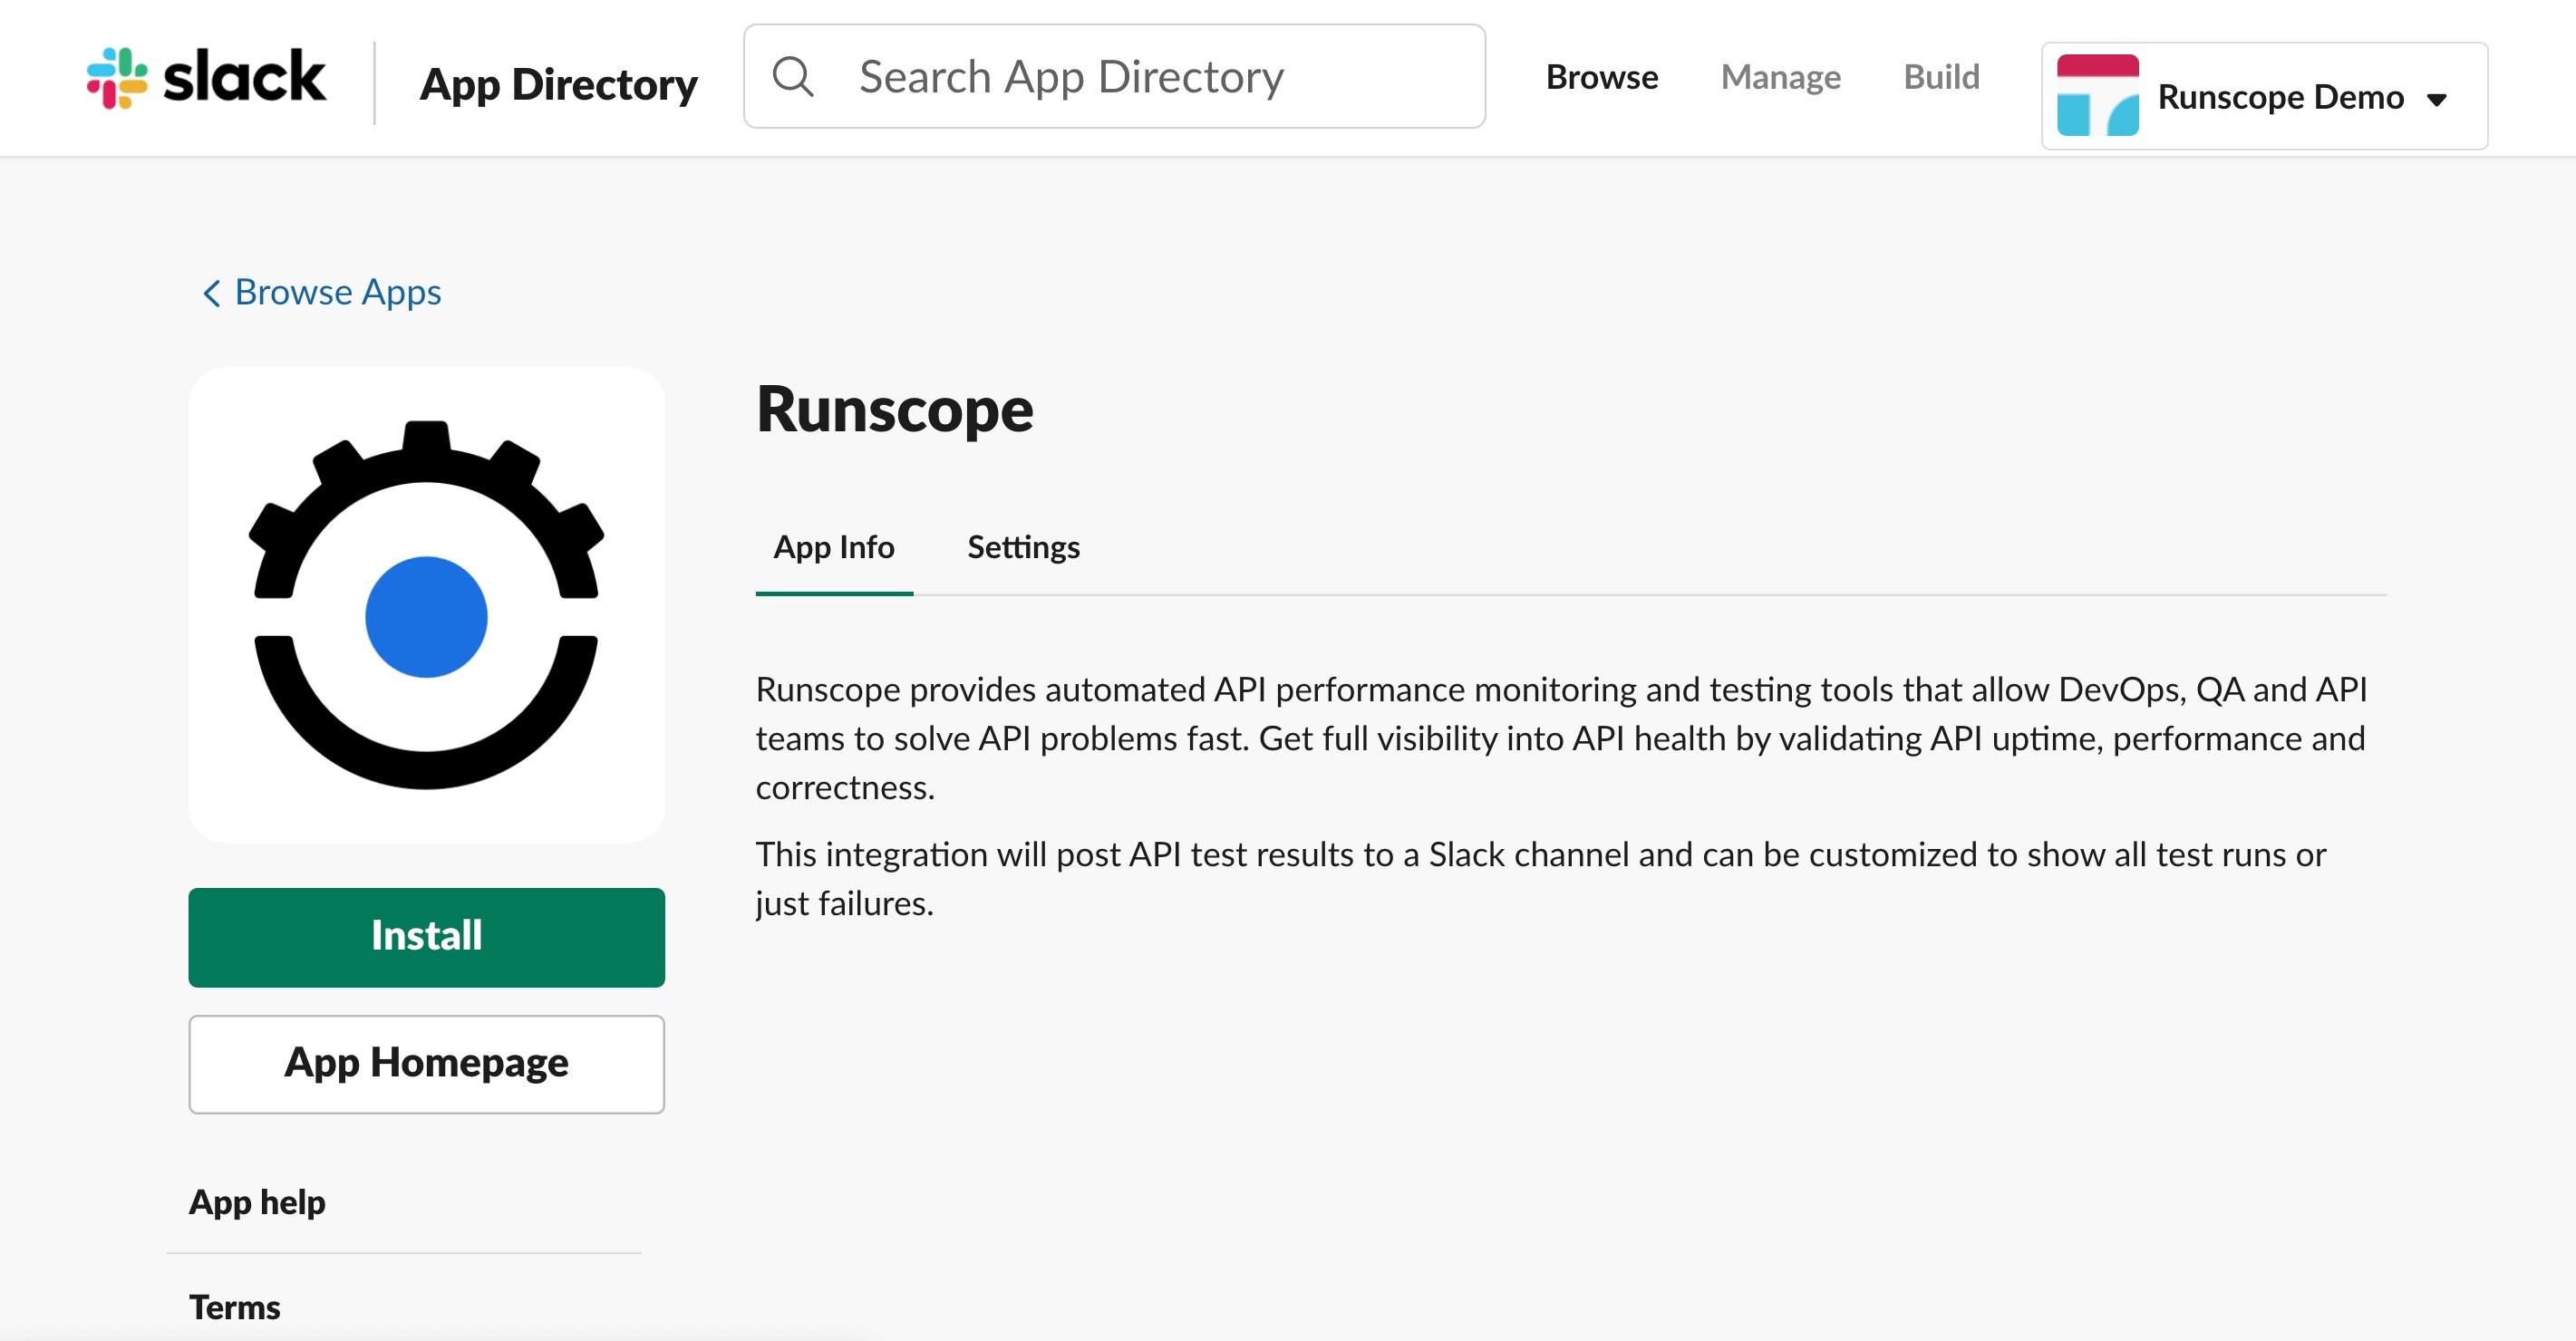 Slack App Directory website showing the Runscope app info page.